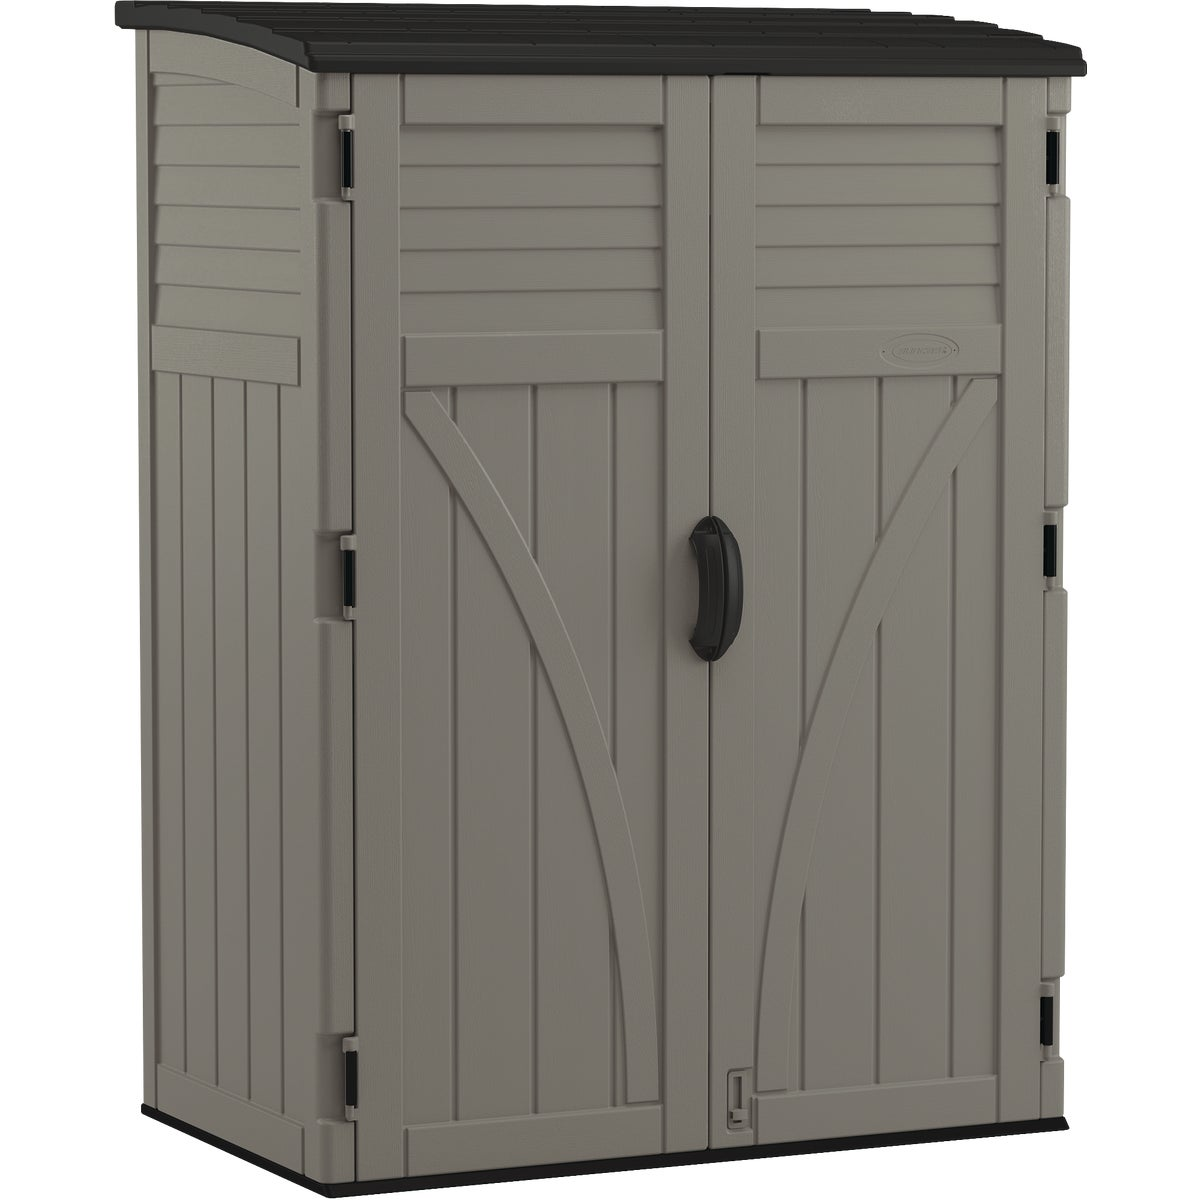 54 CU FT VERTICAL SHED